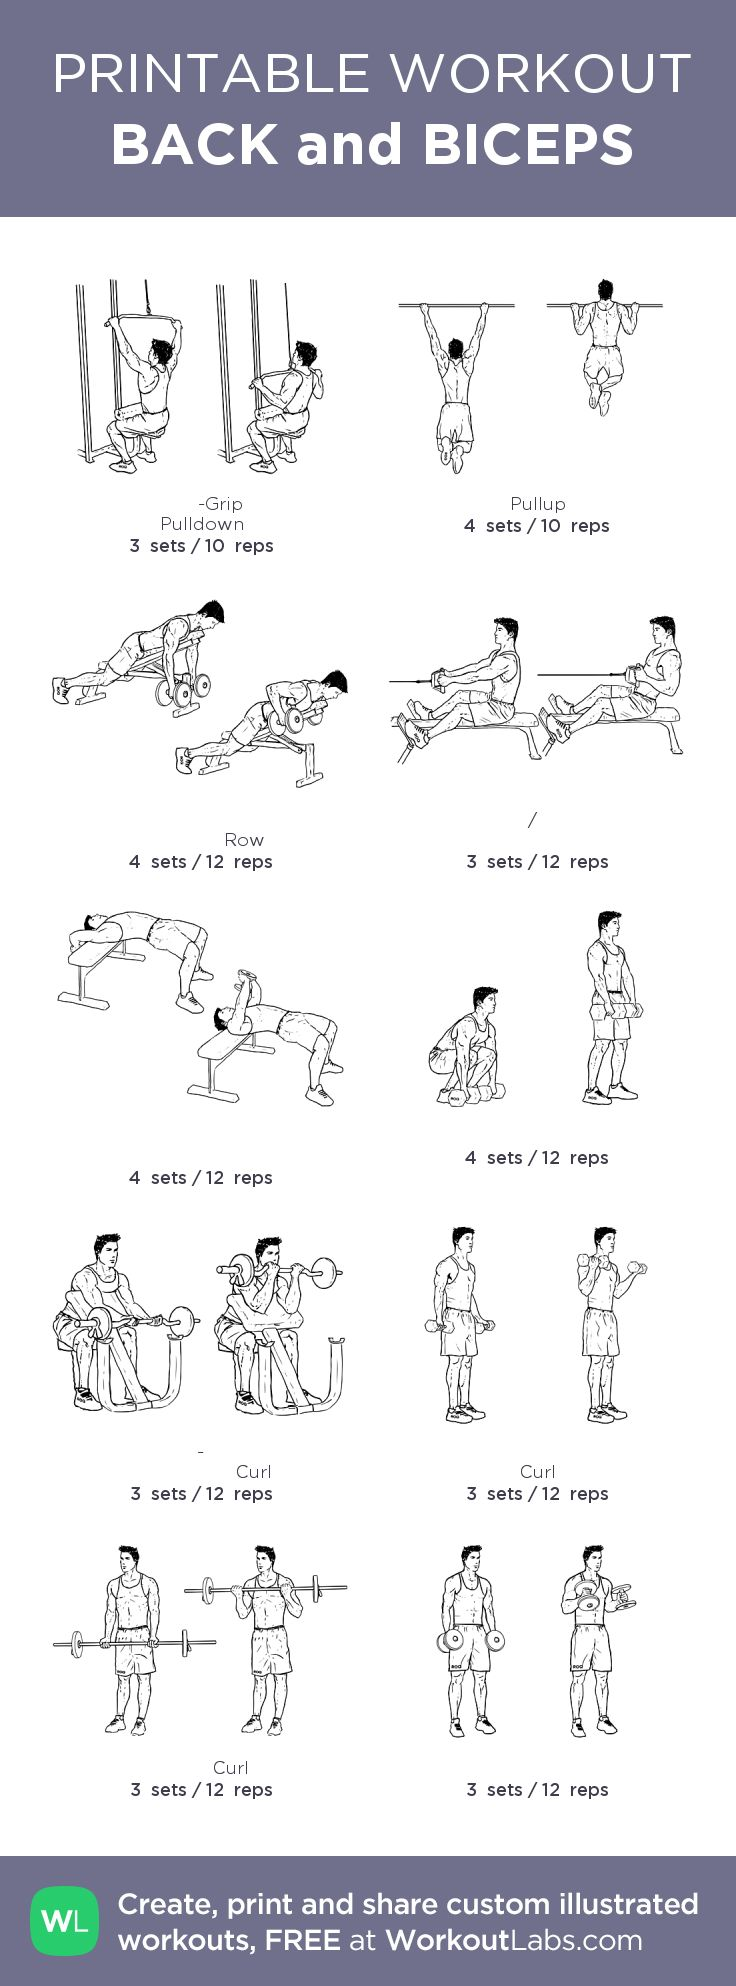 back and bicep workout for women   sport1stfuture org